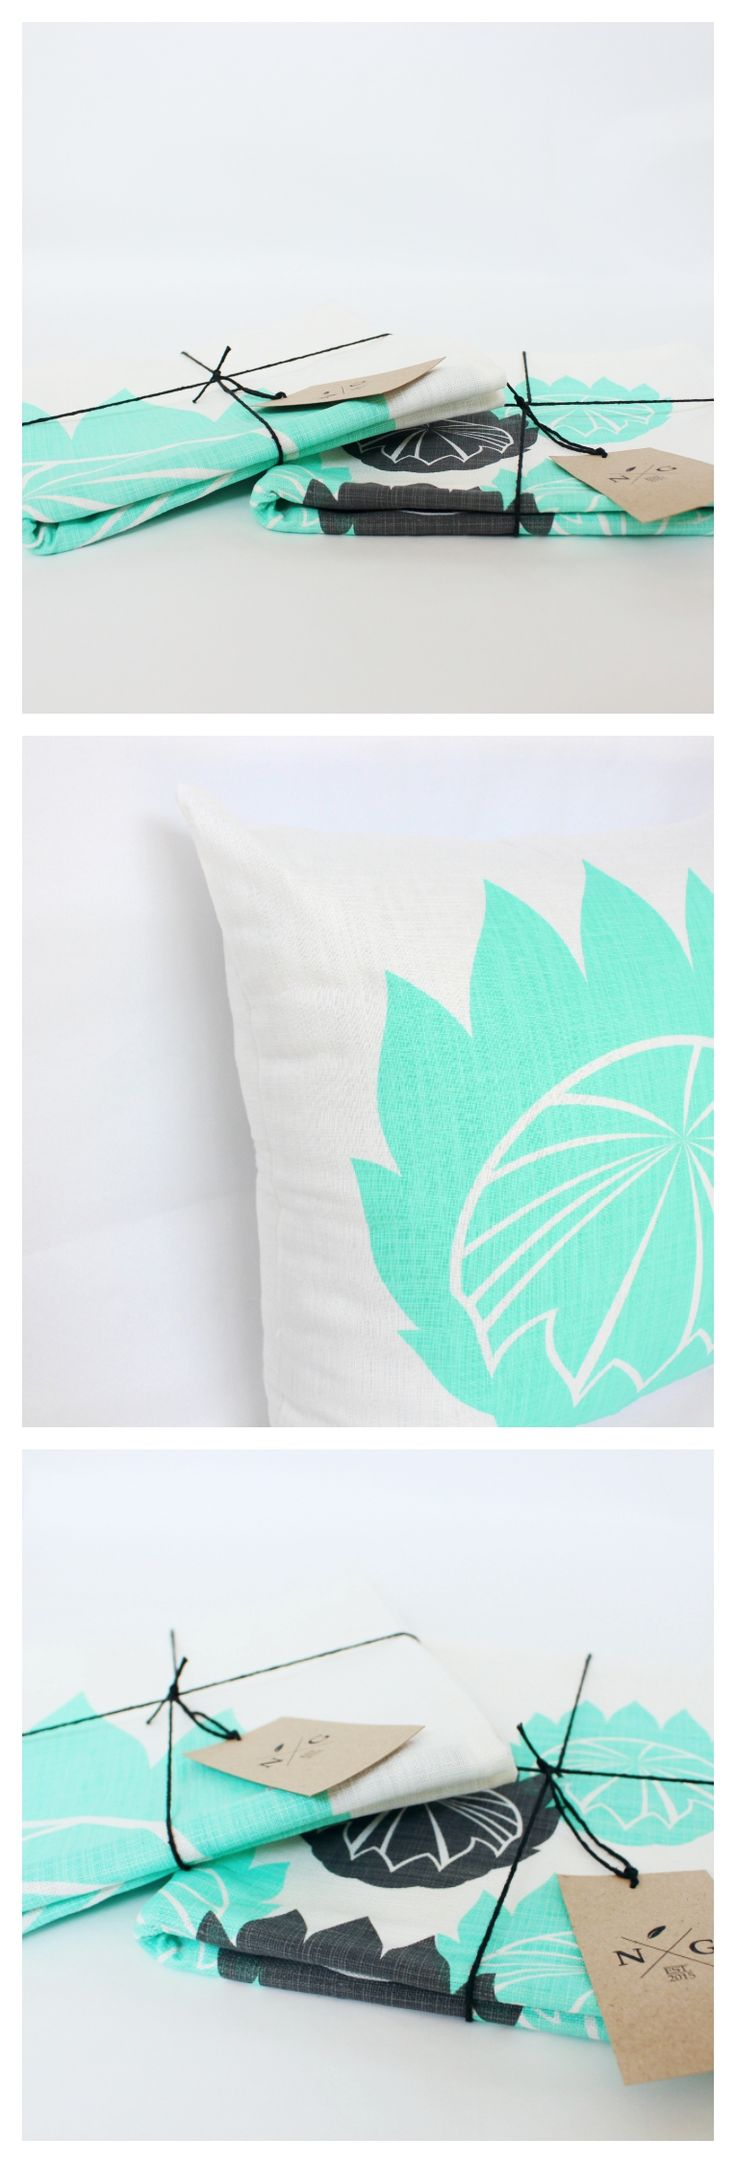 @noteworthy_girl | The Mini Protea Scatter Cushion // designed in South Africa, hand-printed by a family run studio and sewn by a group of ladies from a local township. Ethically made home decor for modern homes that enjoy a pop of aqua or mint cushion covers.